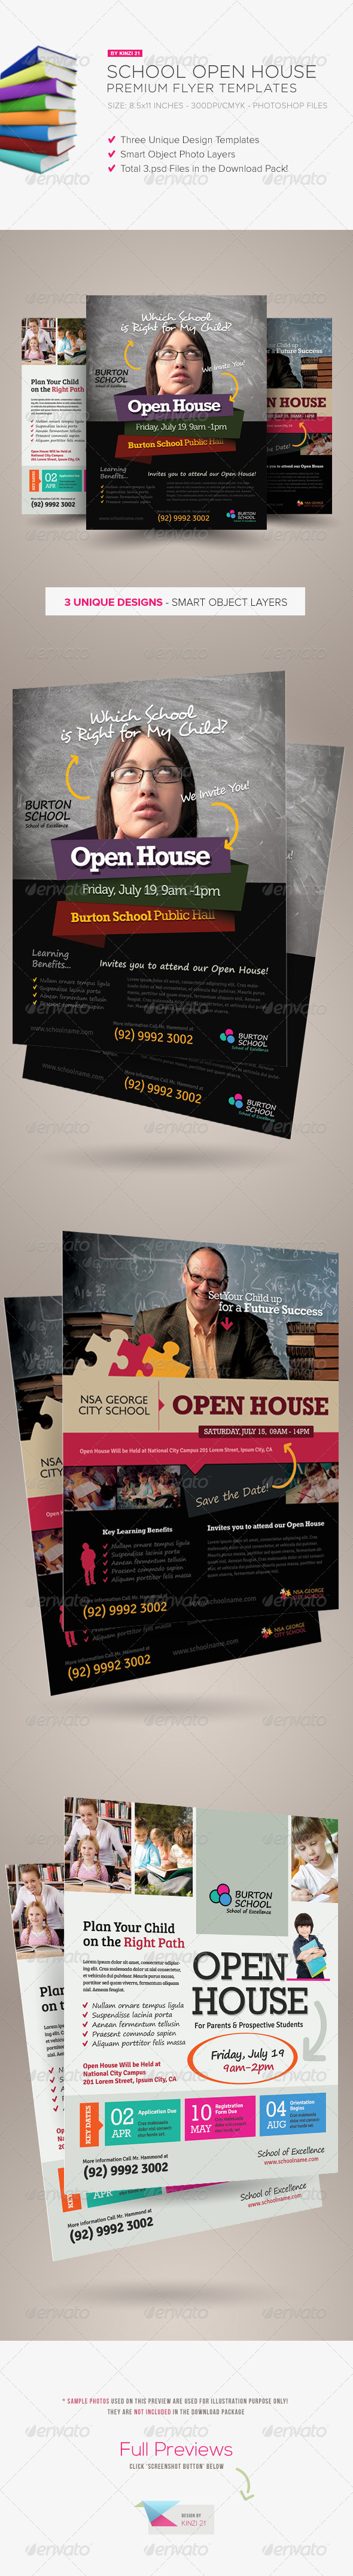 School Open House Flyers